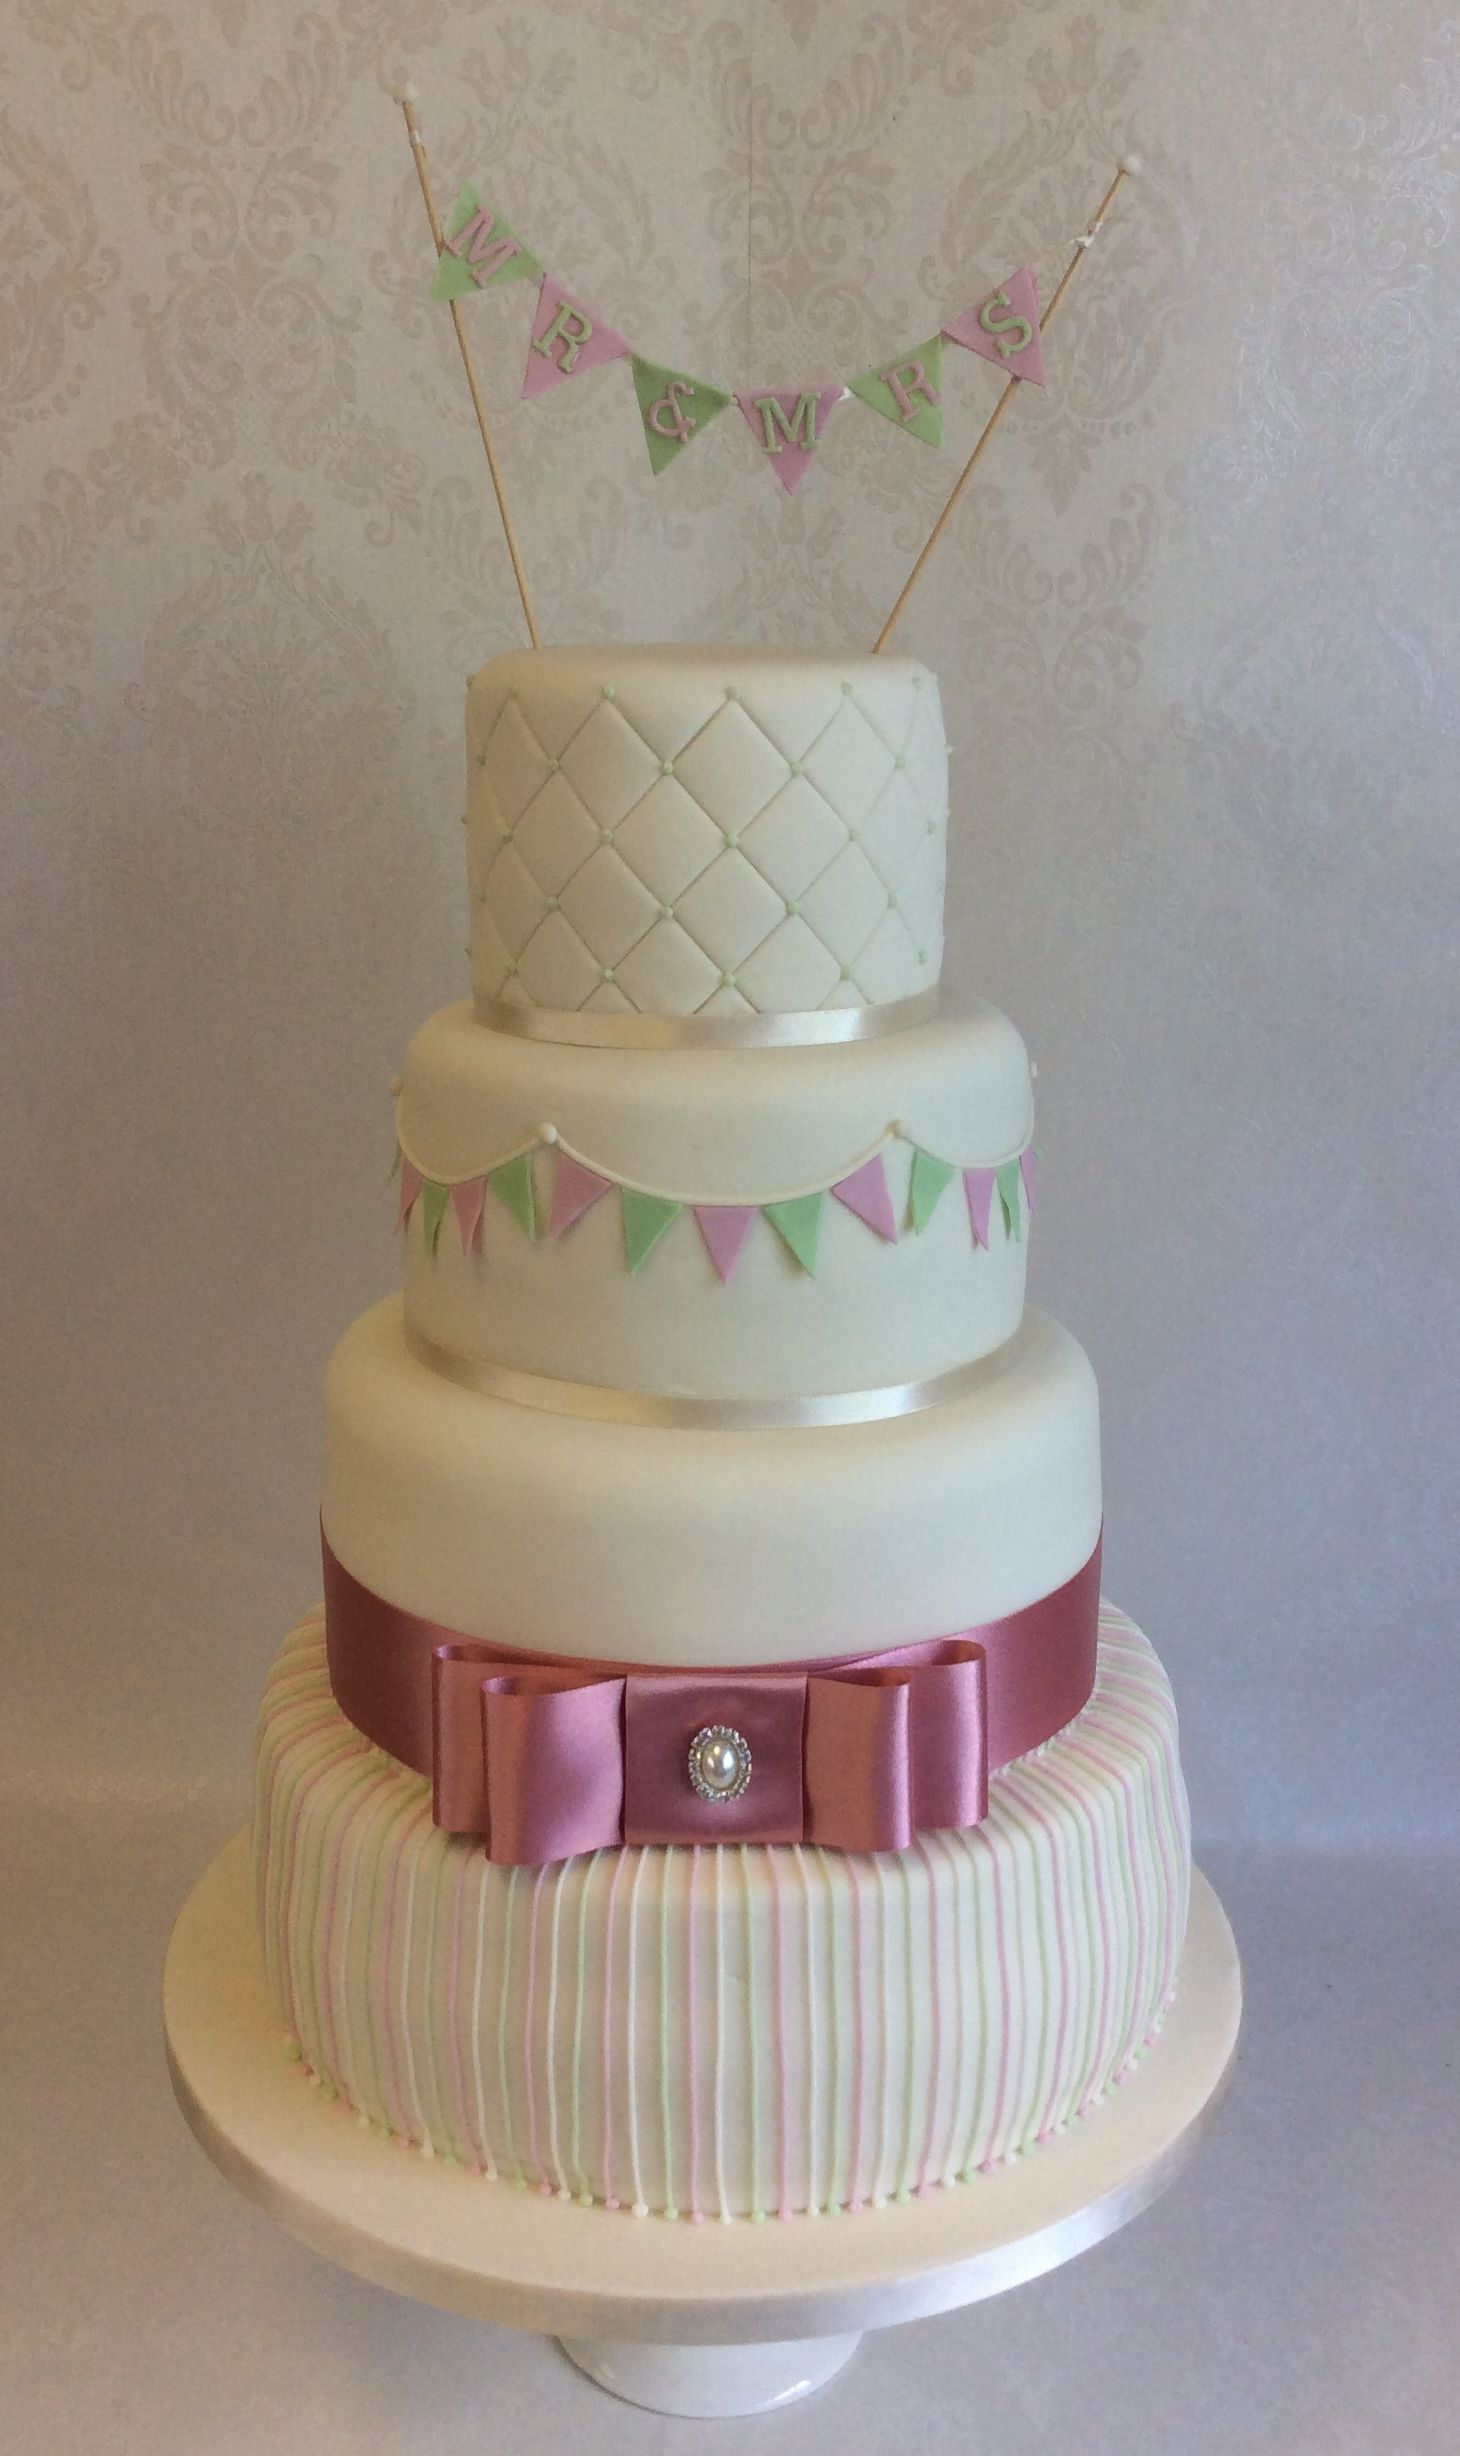 Alice - in dusky pink and pale green with bunting inkeeping with the decor at the wedding